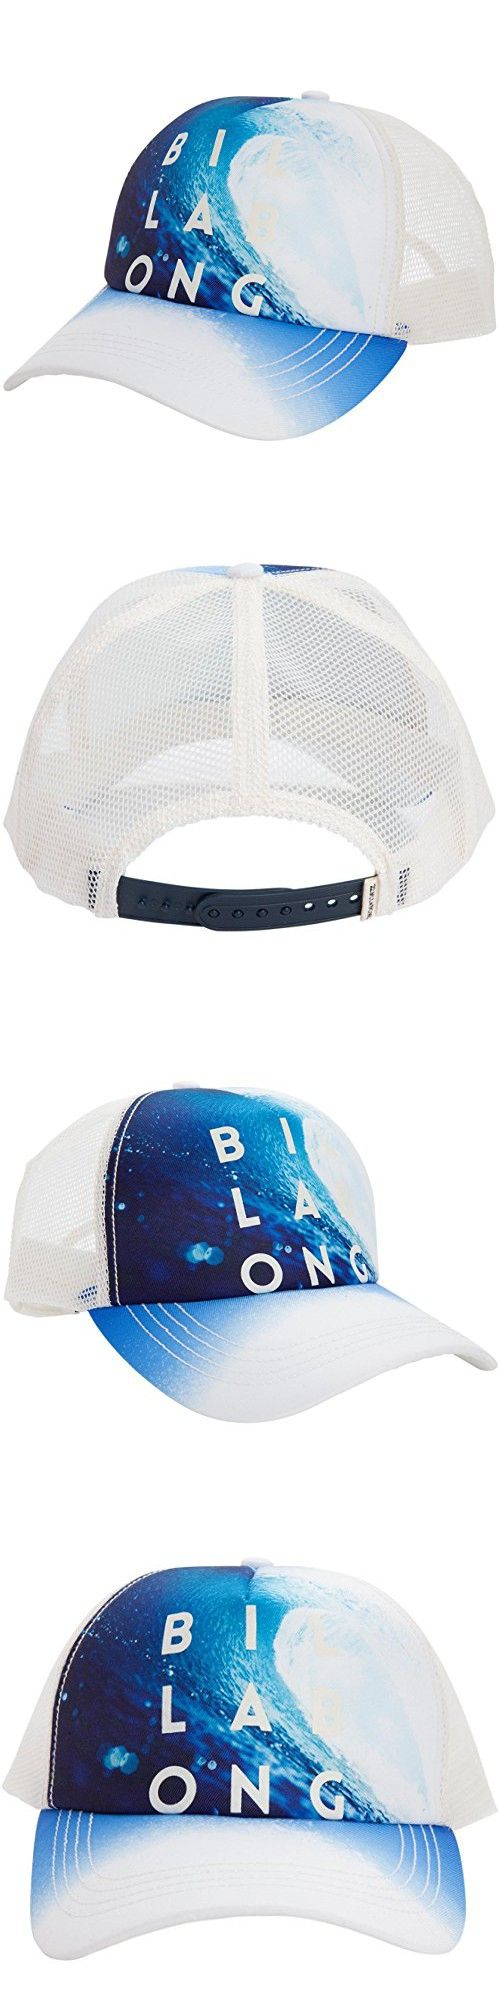 Billabong Junior's Take Me There Trucker Hat, Fiji Blue, One Size